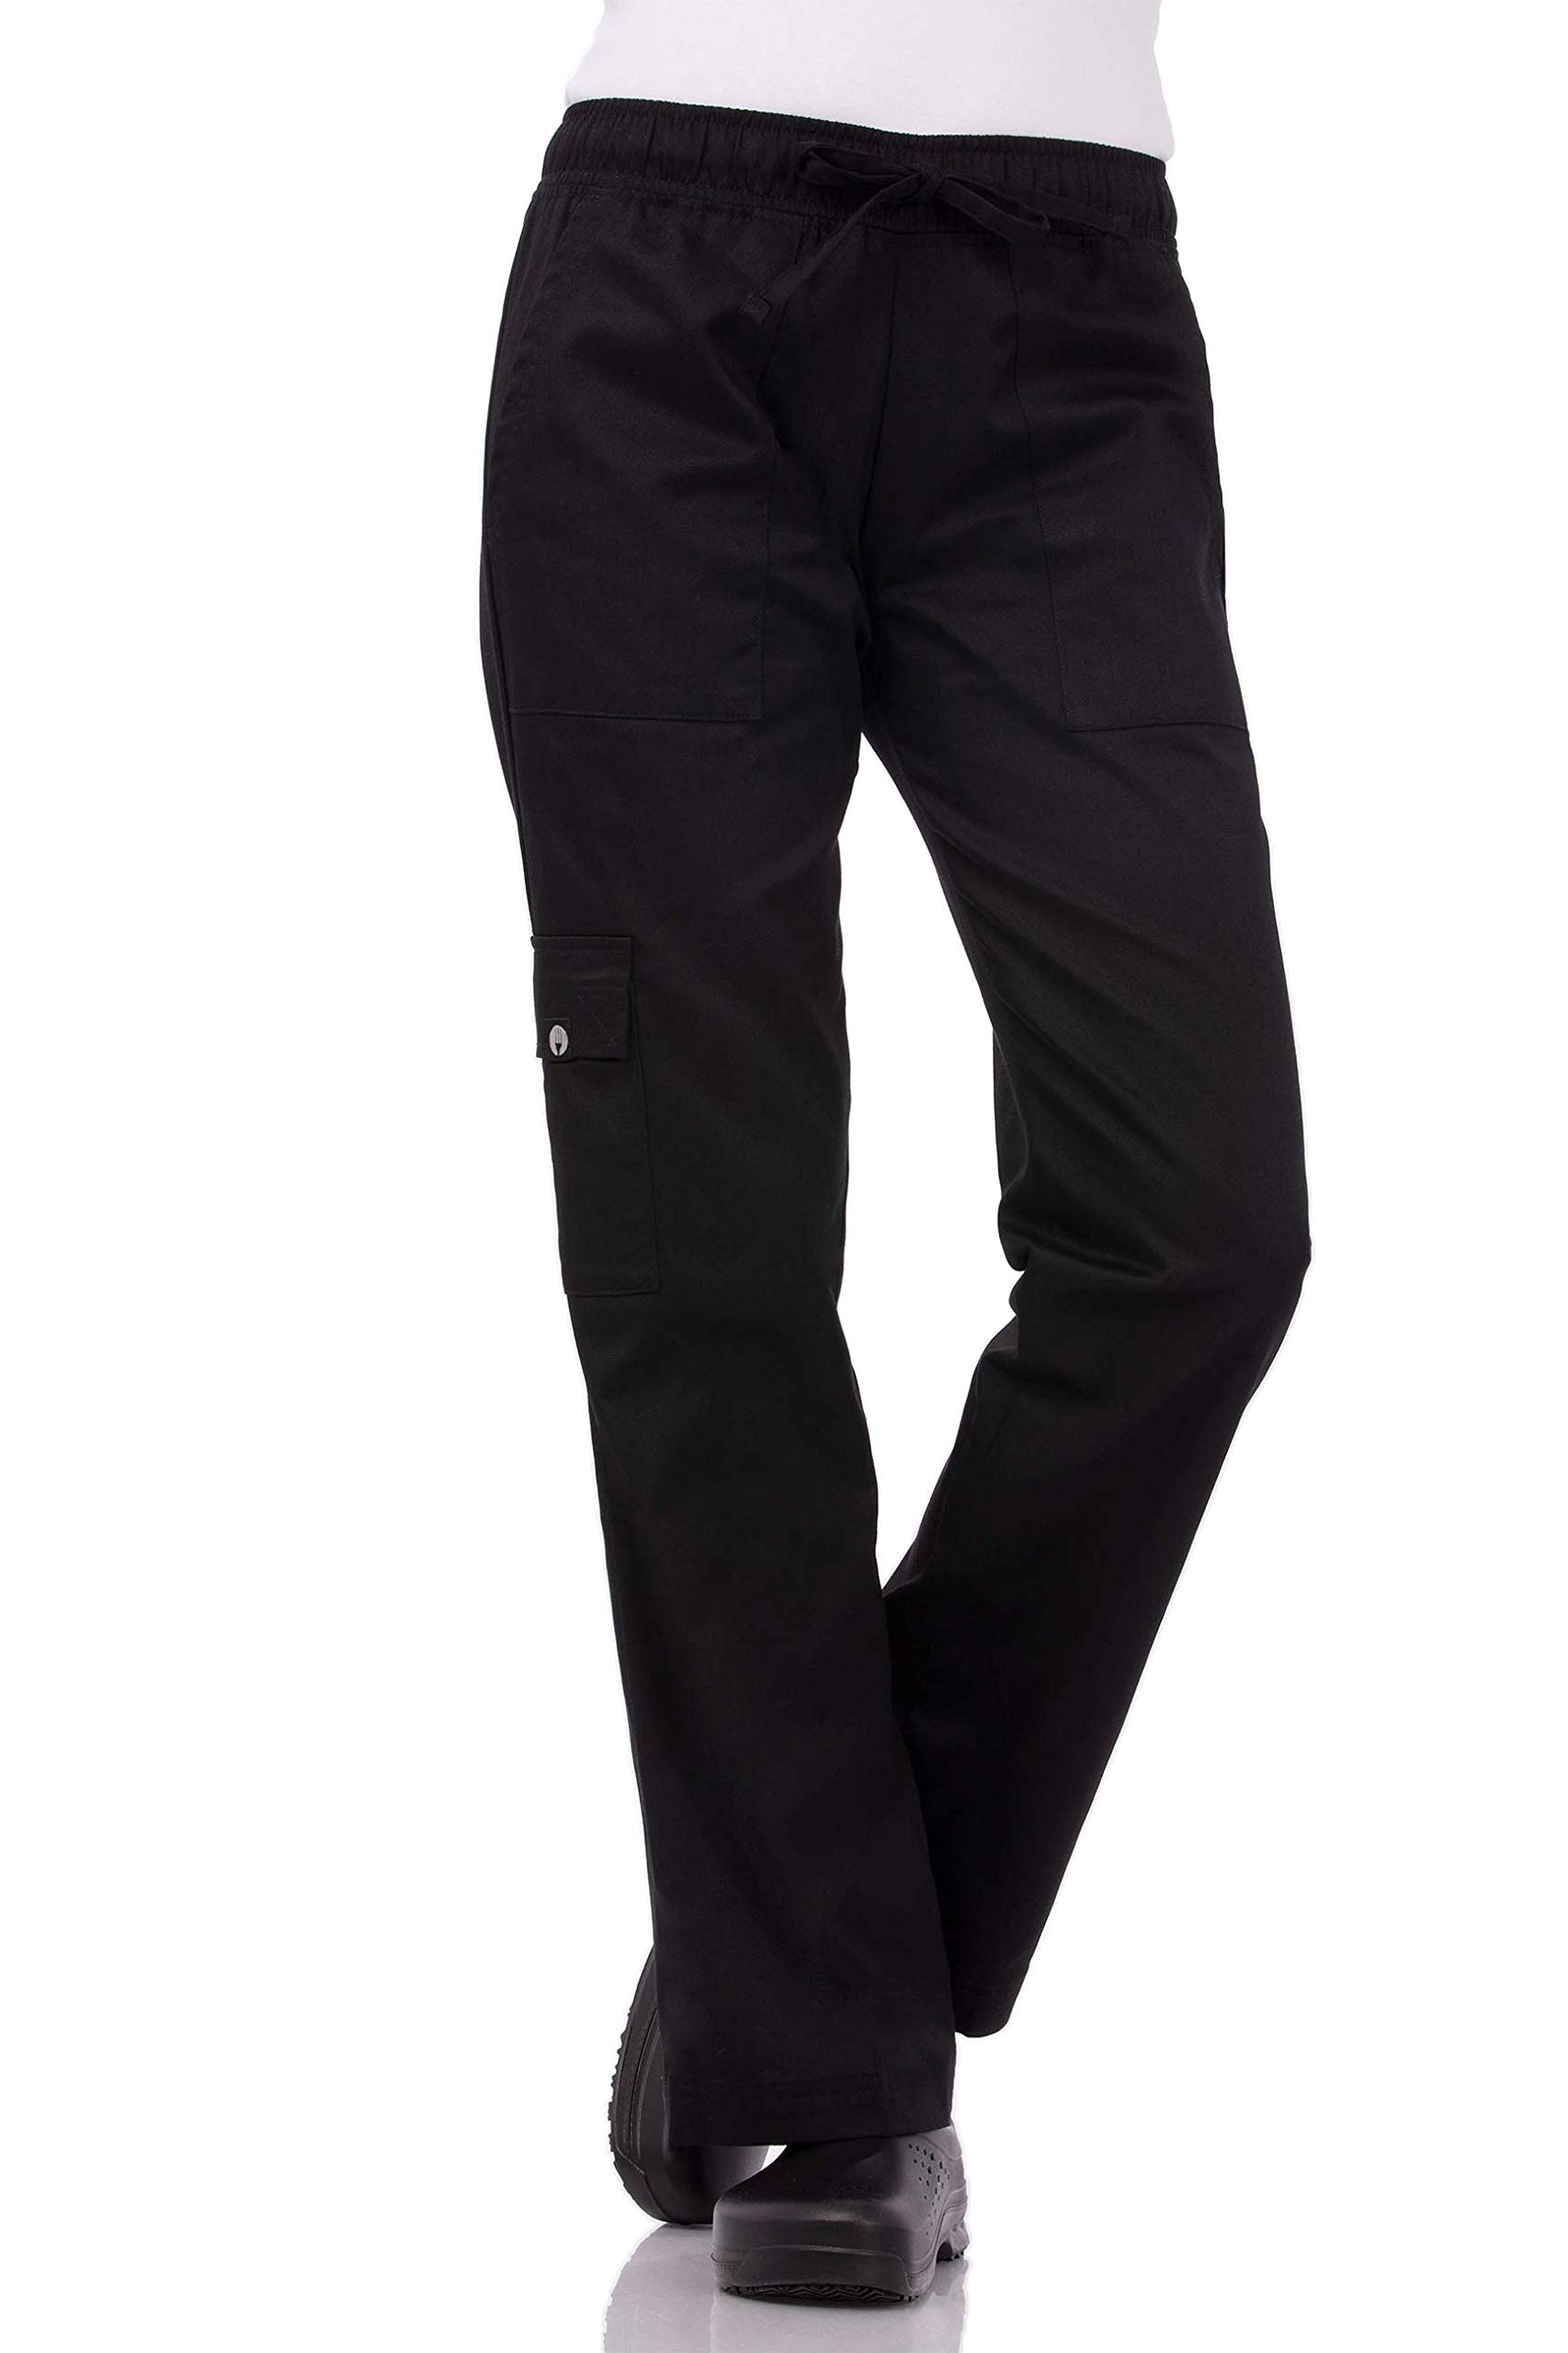 Chef Works Women's Cargo Chef Pants, Black, Small by Chef Works